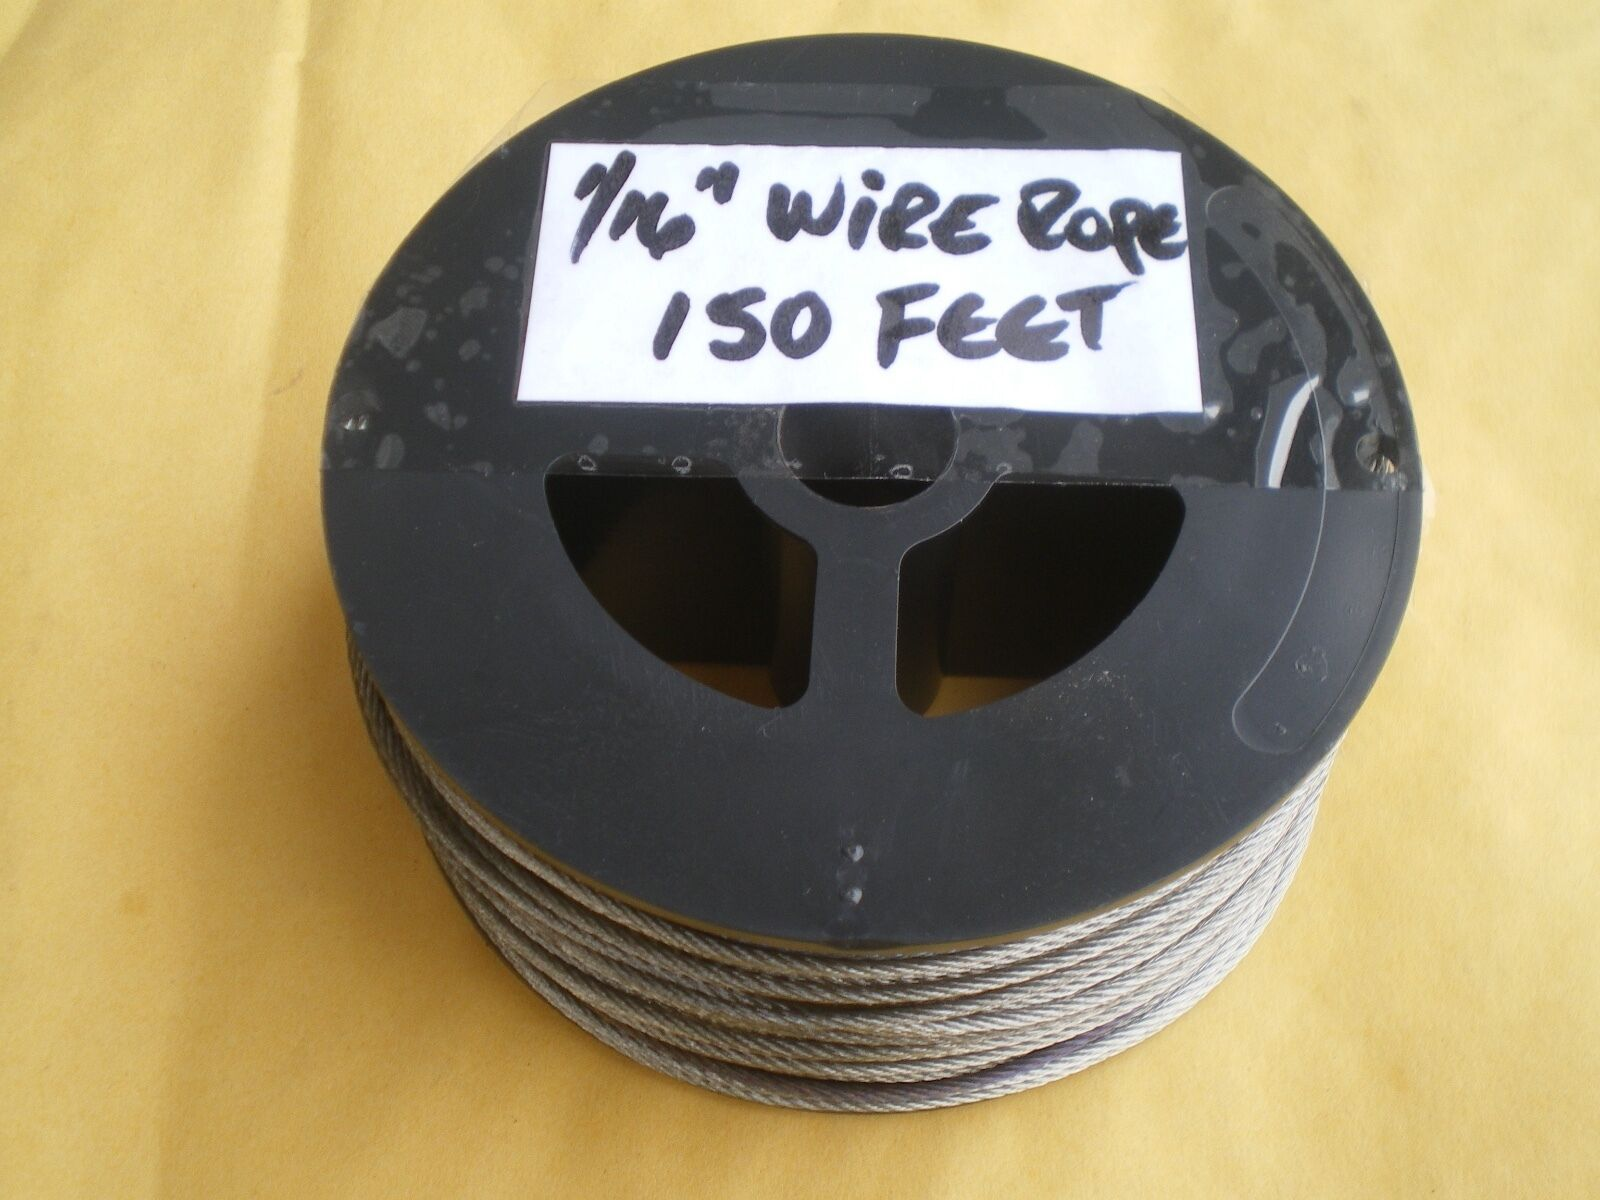 STAINLESS STEEL 1 16  WIRE ROPE 150 FEET, 400 LBS TEST 7X7 STRAND+50 SLEEVES